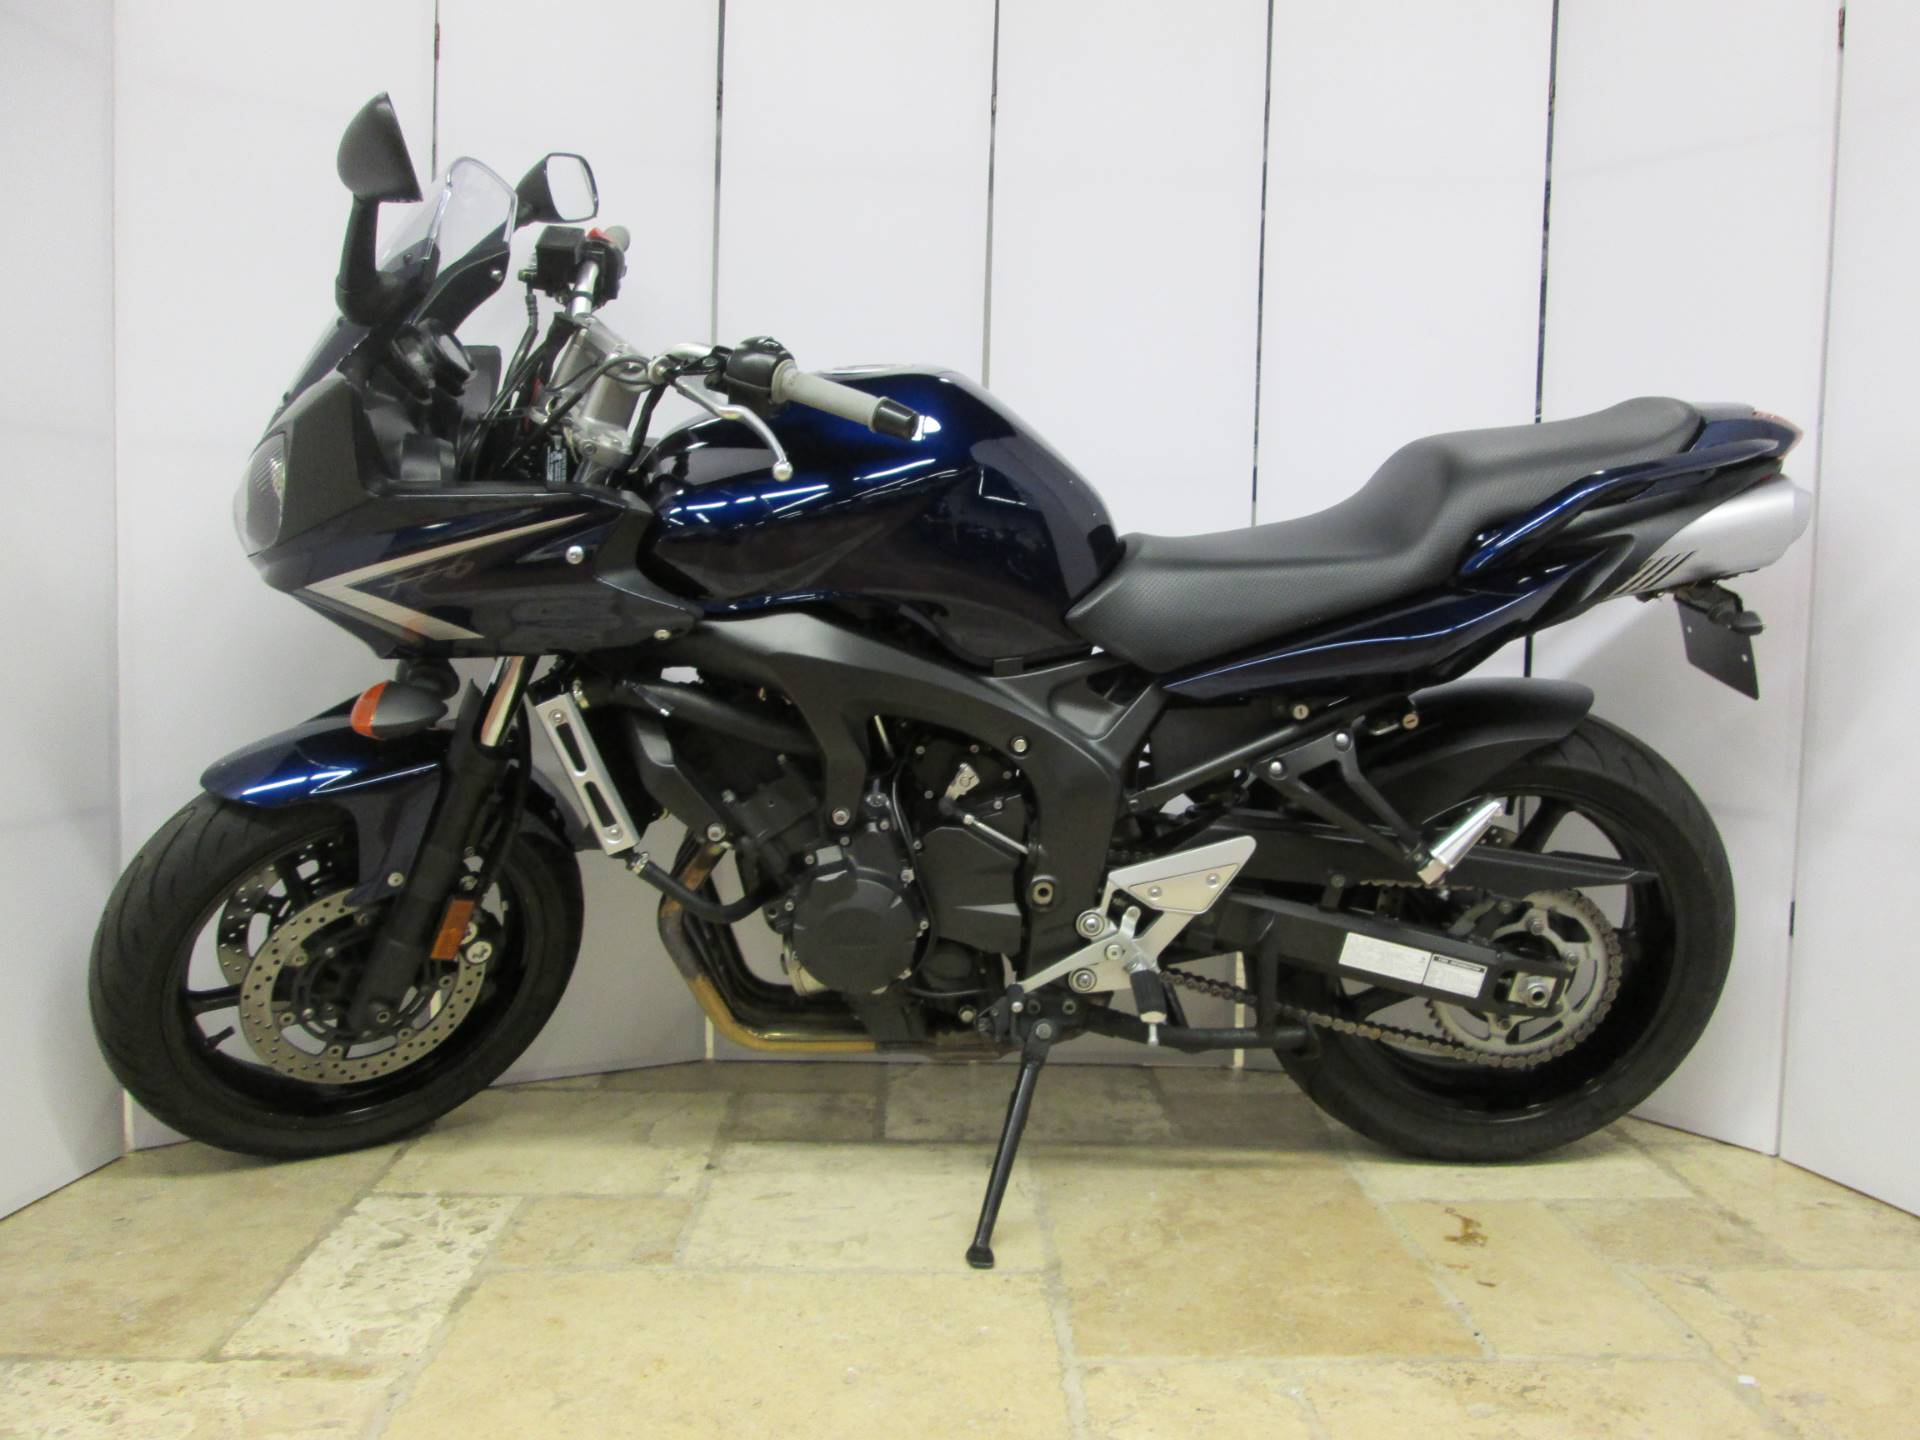 New Bike Qf B Cd Be Af Dd C D E Bfd together with Yamaha Fjr A Motorcycles In Saint Robert Mo likewise Px further  moreover Px. on heated grips b e af c d a